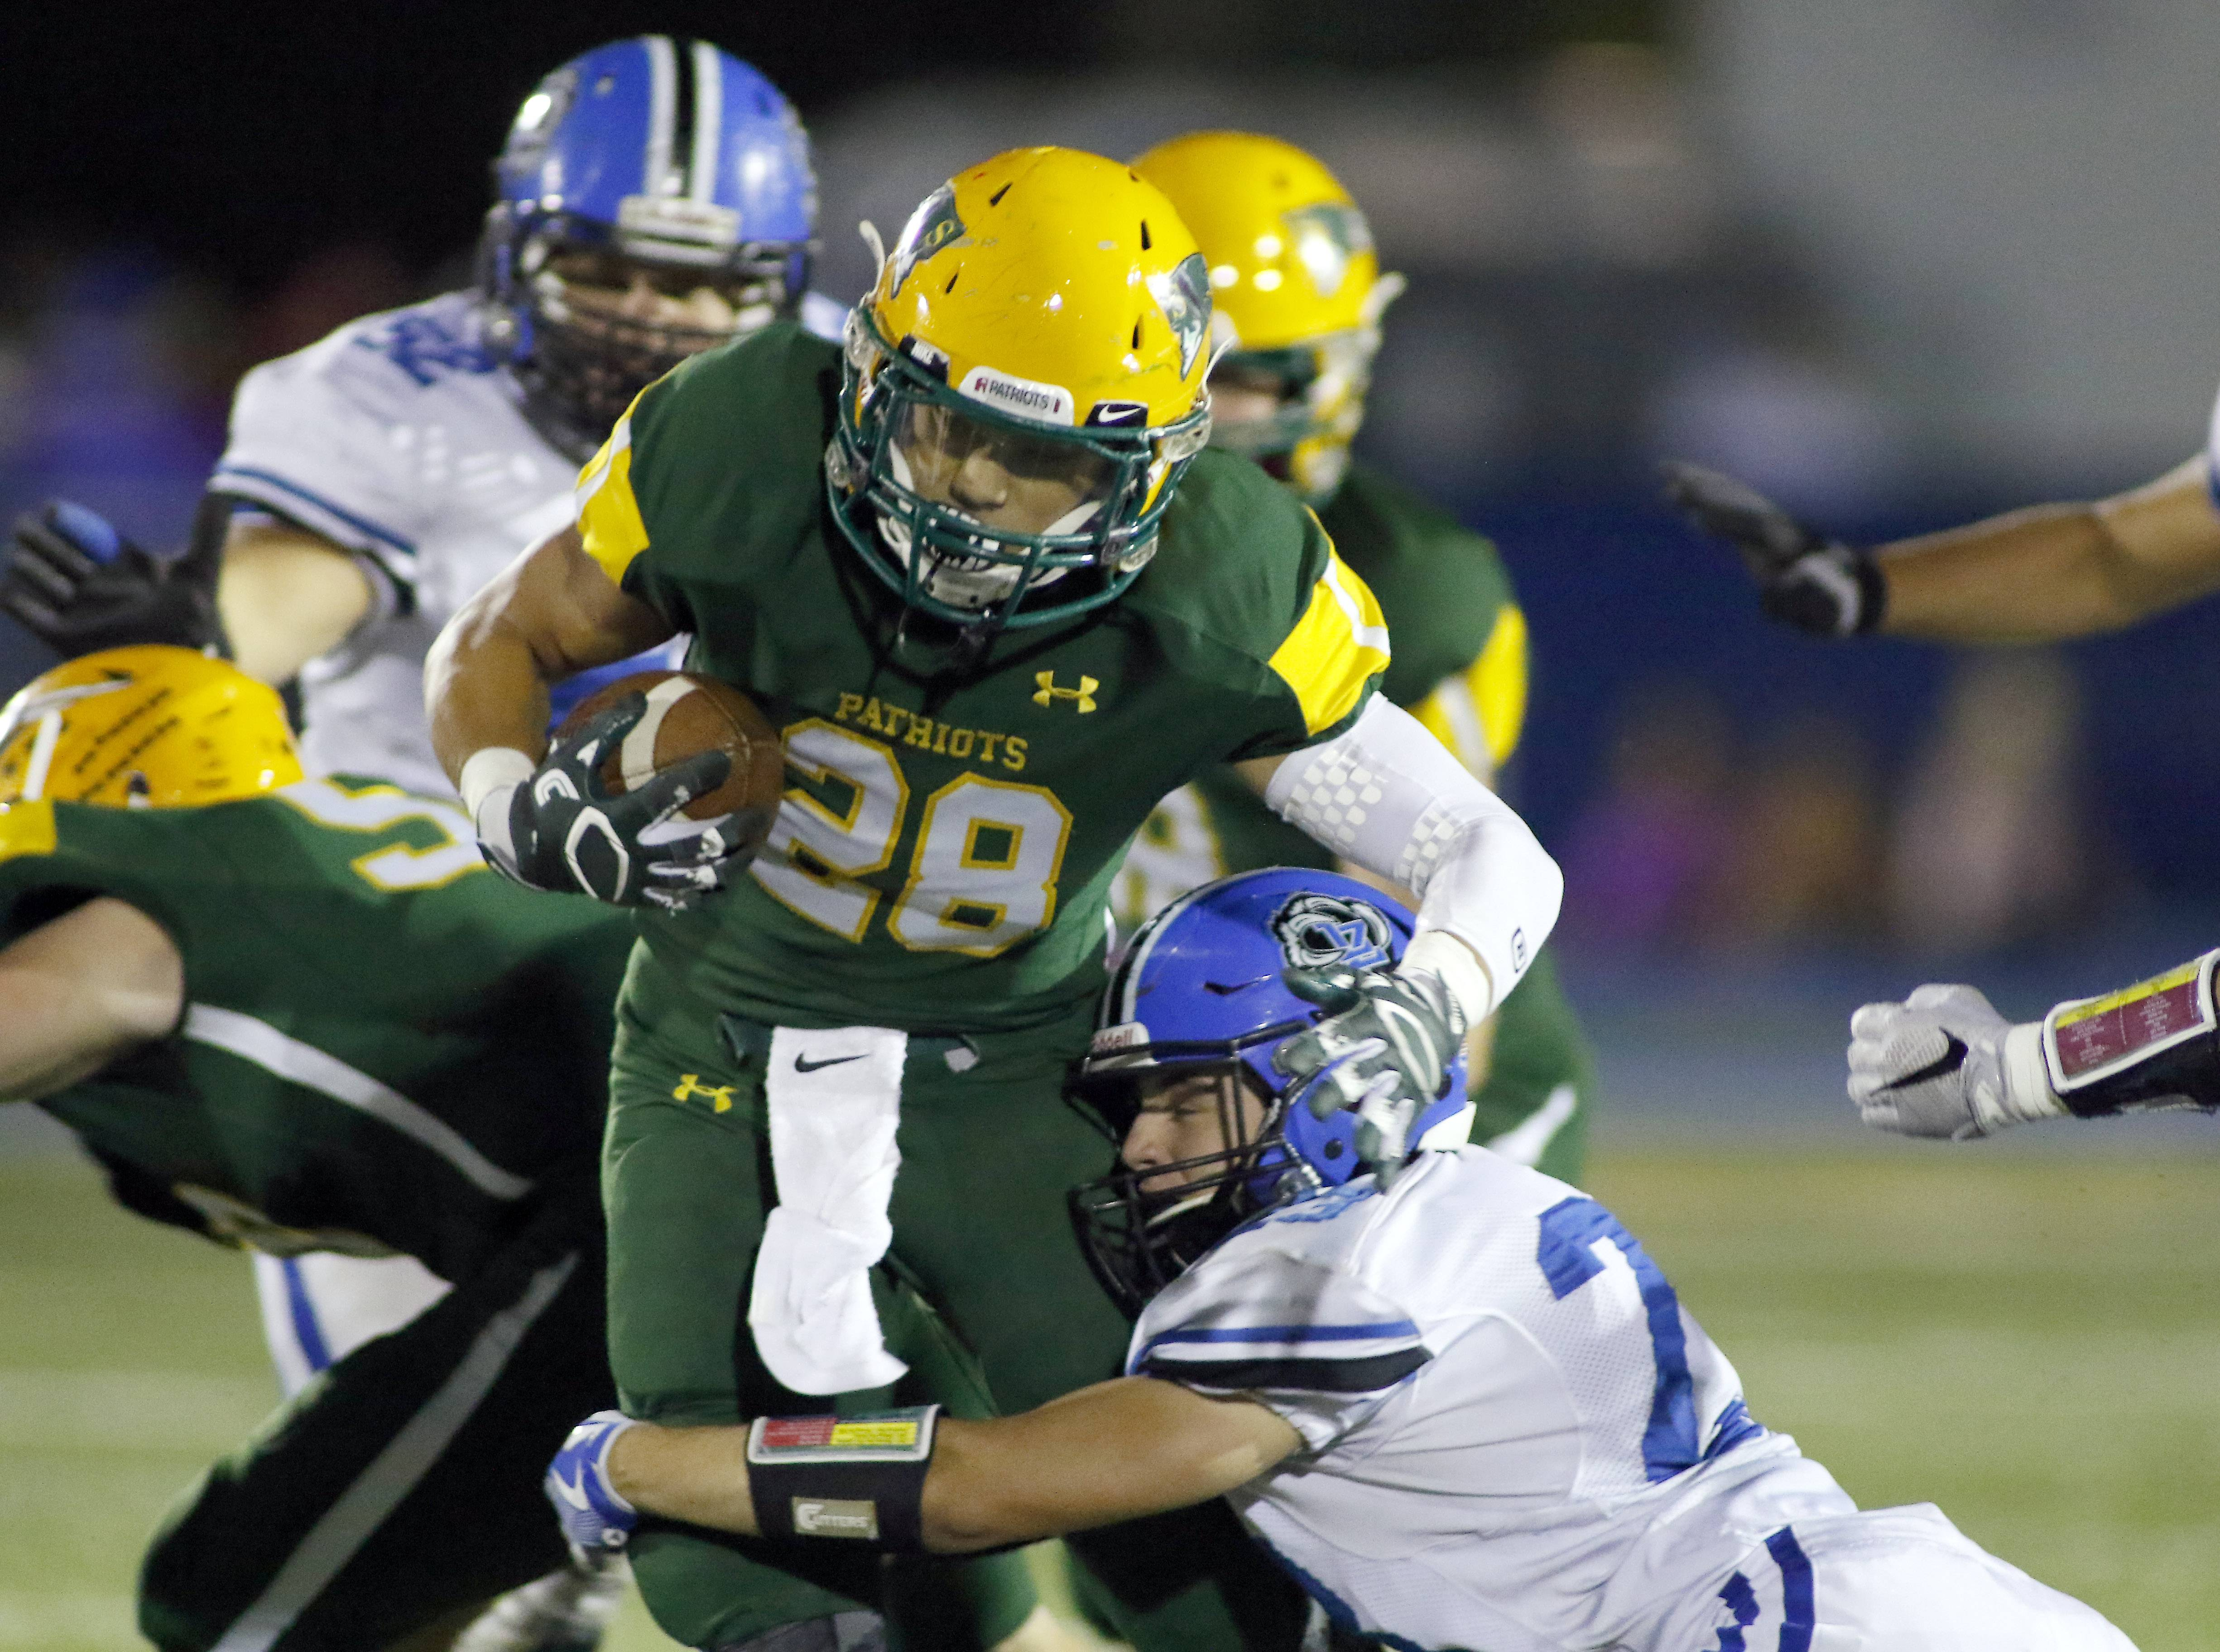 Stevenson High's Matt Korinek (28) tries to slide through a tackle against Lake Zurich in a 2016 game. Under a new contract, all varsity athletes at Stevenson High will wear uniforms manufactured by Under Armour.